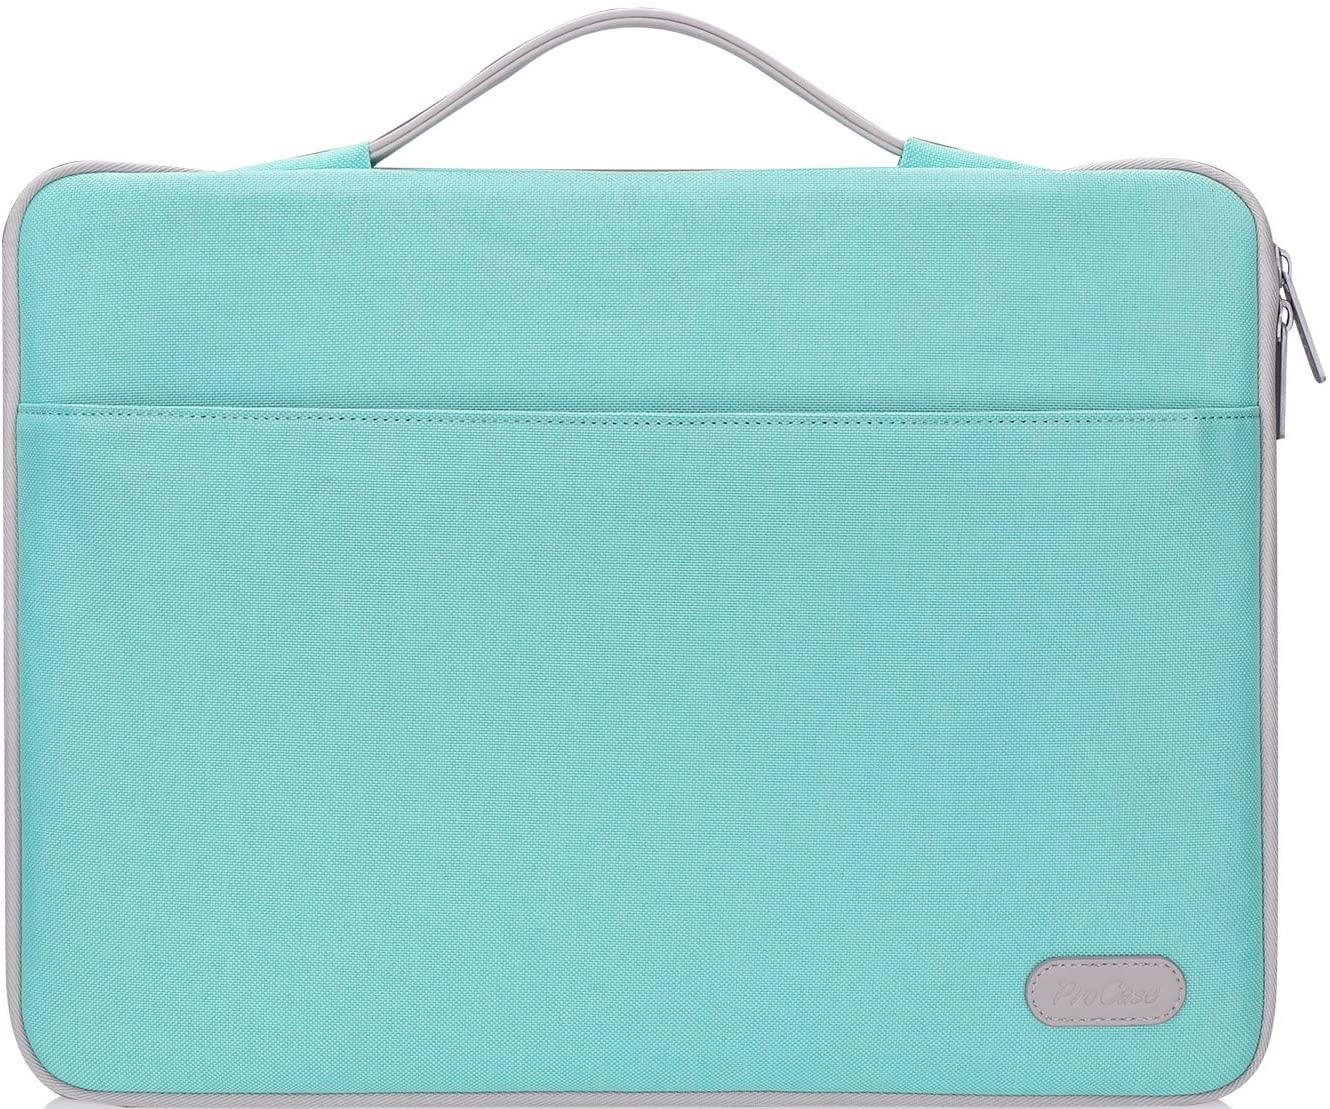 "ProCase 12-12.9 inch Sleeve Case Bag for Surface Pro X 2017/Pro 7 6 4 3, MacBook Pro 13, iPad Pro Protective Carrying Cover Handbag for 11"" 12"" Lenovo Dell Toshiba HP ASUS Acer Chromebook -Mint Green"